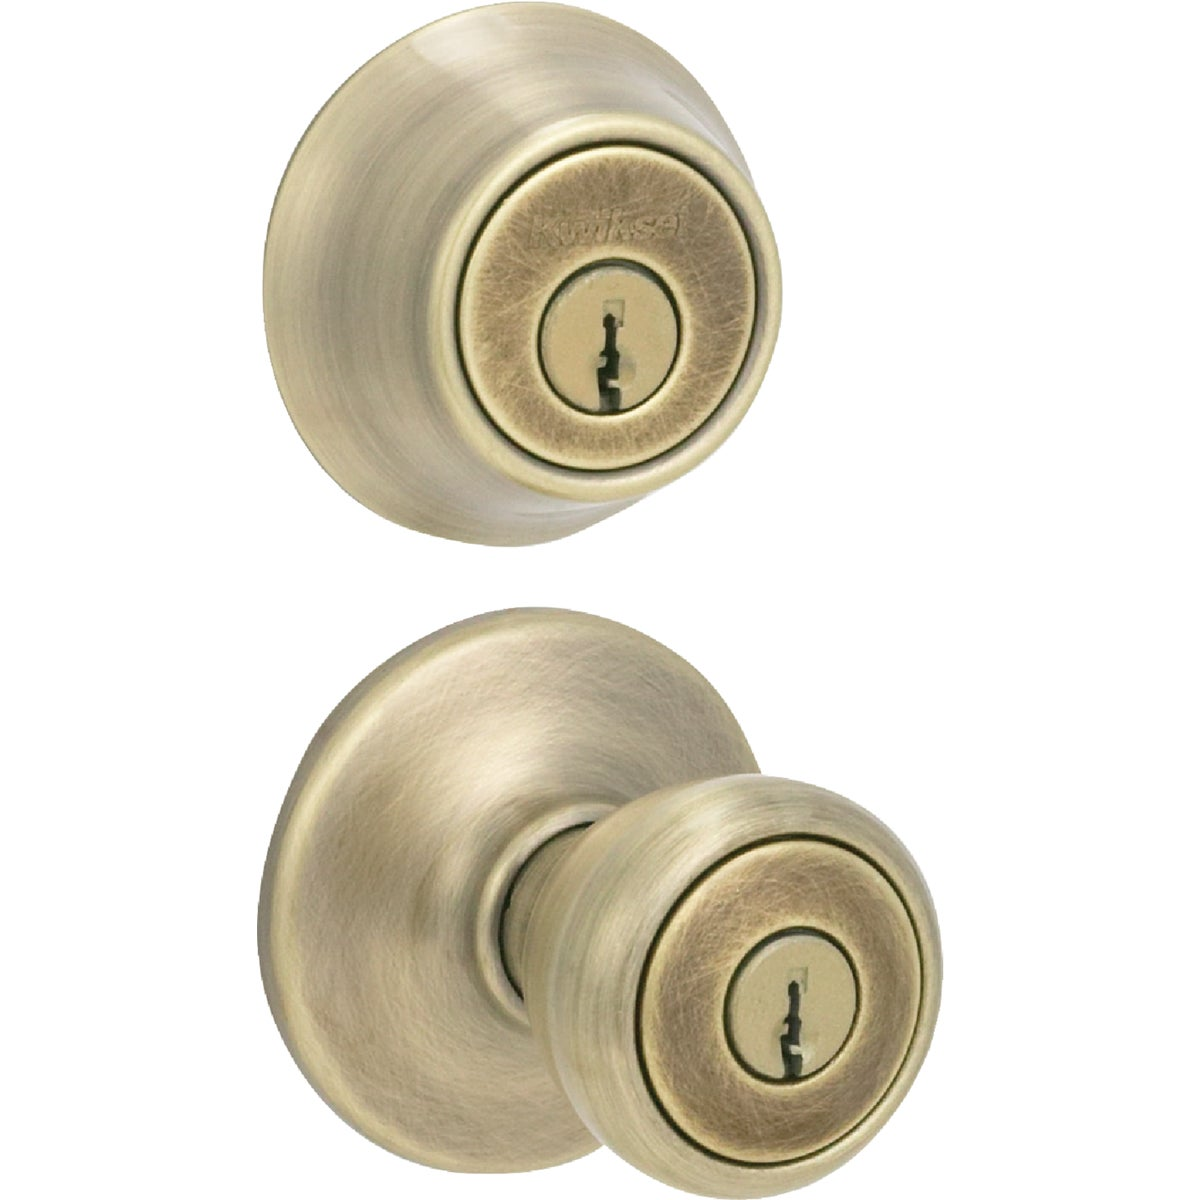 AB CP TYLO 2CY ENT COMBO - 695T 5 CP CODE K6 by Kwikset